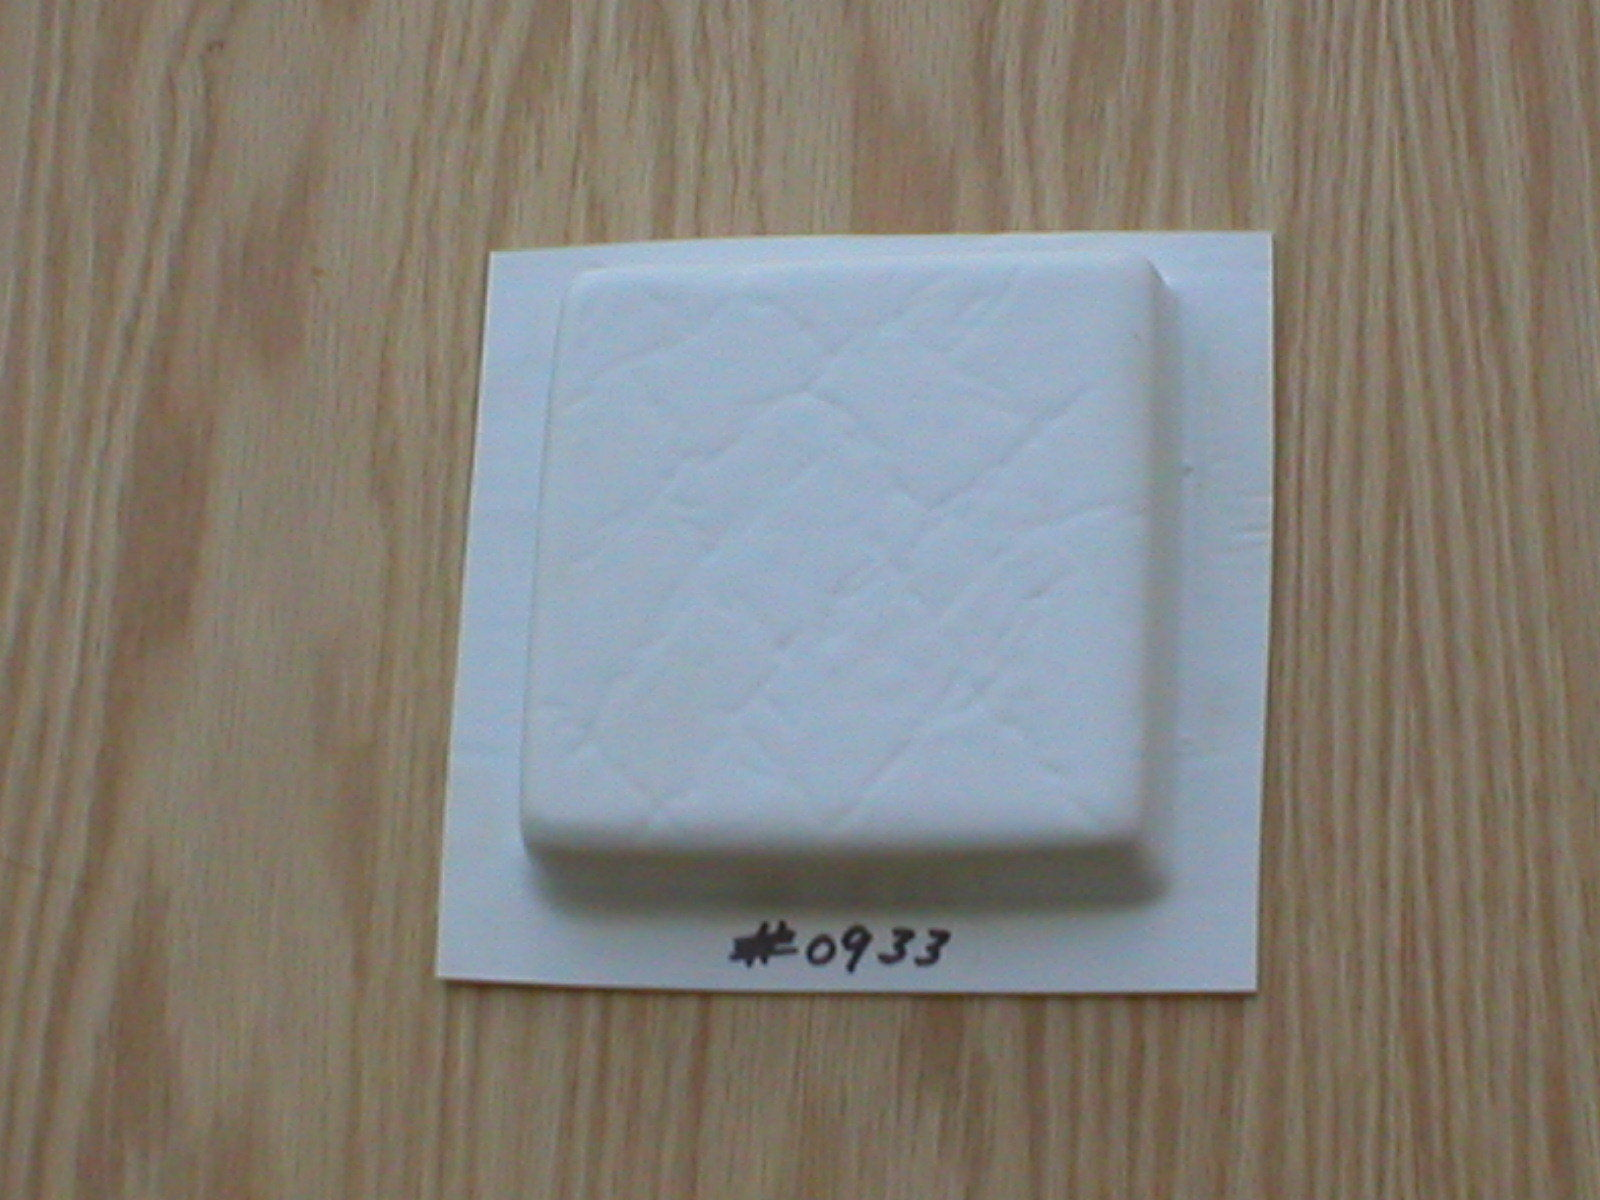 36- 4X4 TILE MOLD LOT MAKES 1000s OF TILES - CHOOSE FROM NINE TILE STYLES!